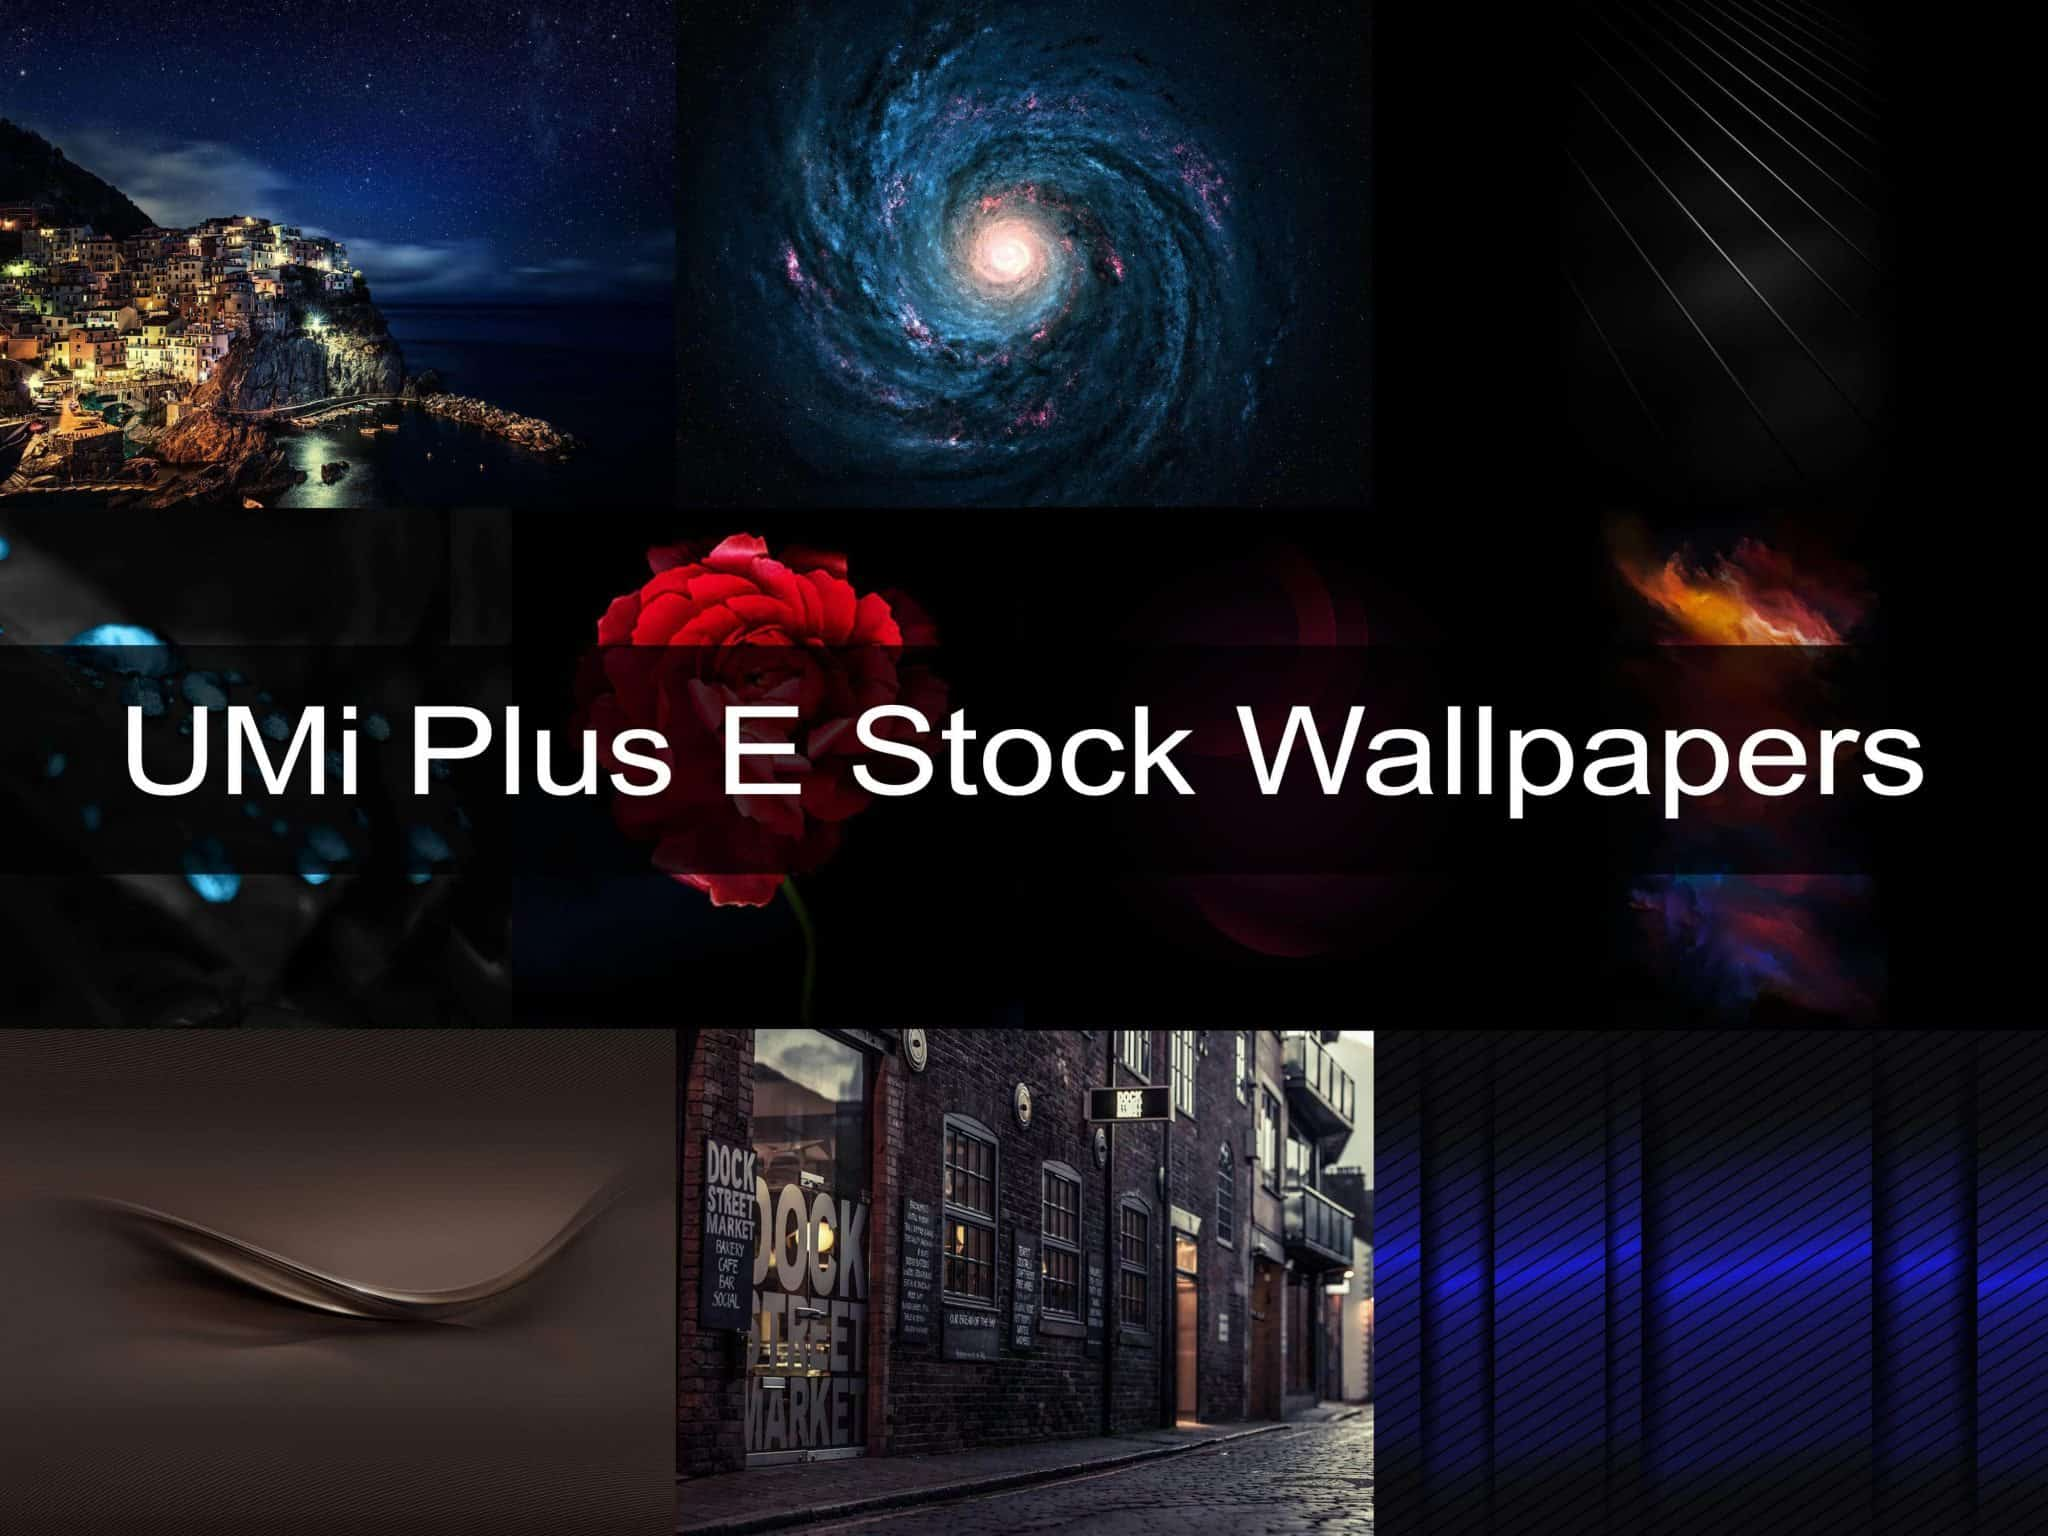 UMi Plus E Stock Wallpapers